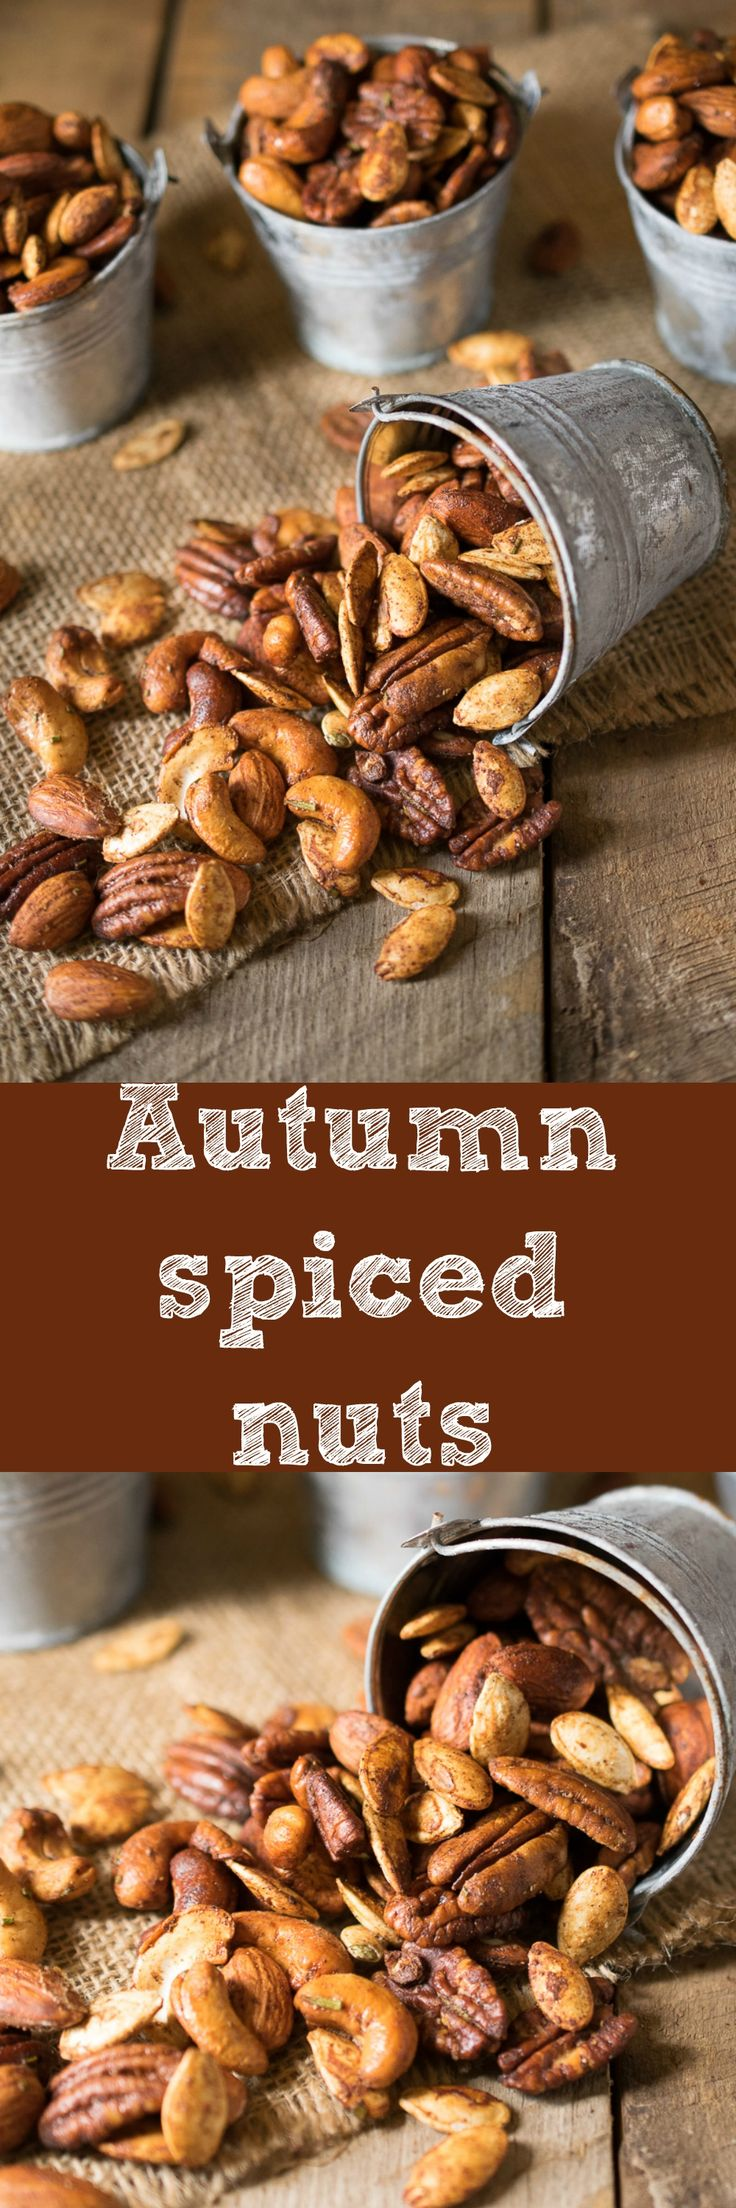 Mixed nuts and pumpkin seeds are roasted with warm spices, honey and rosemary, a perfectly comforting snack. The Ultimate Pinterest Party, Week 69